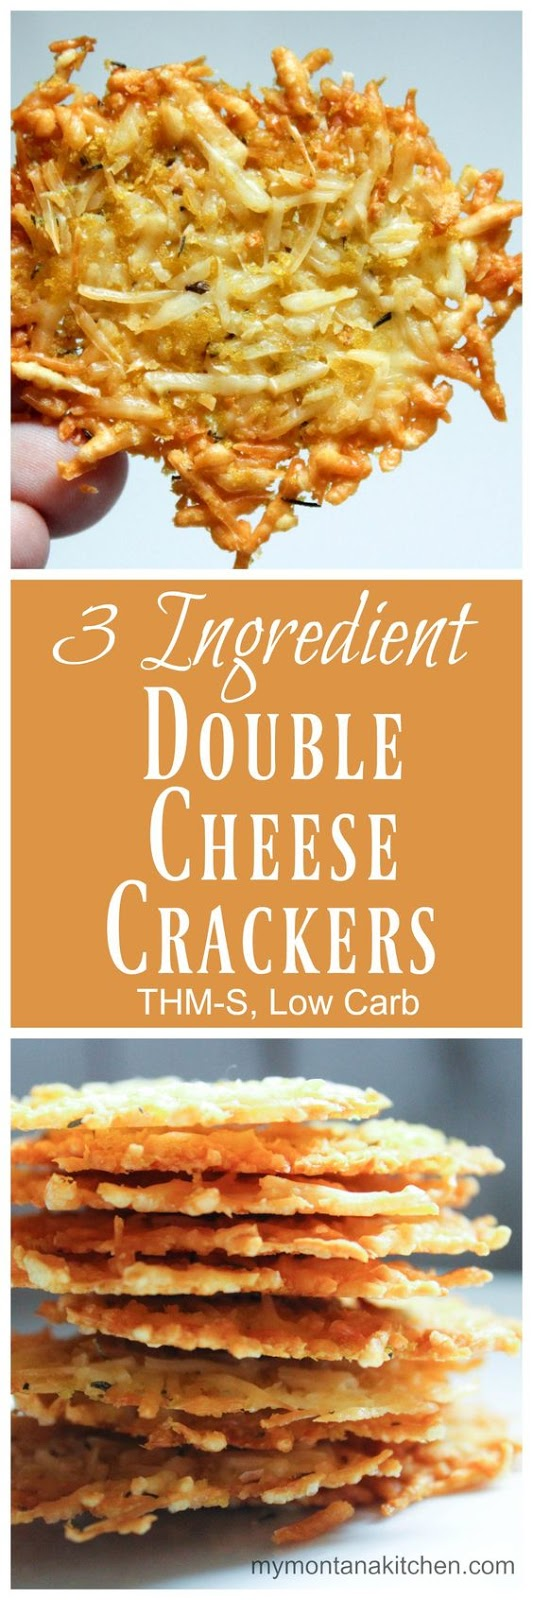 3 INGREDIENT DOUBLE CHEESE CRACKERS